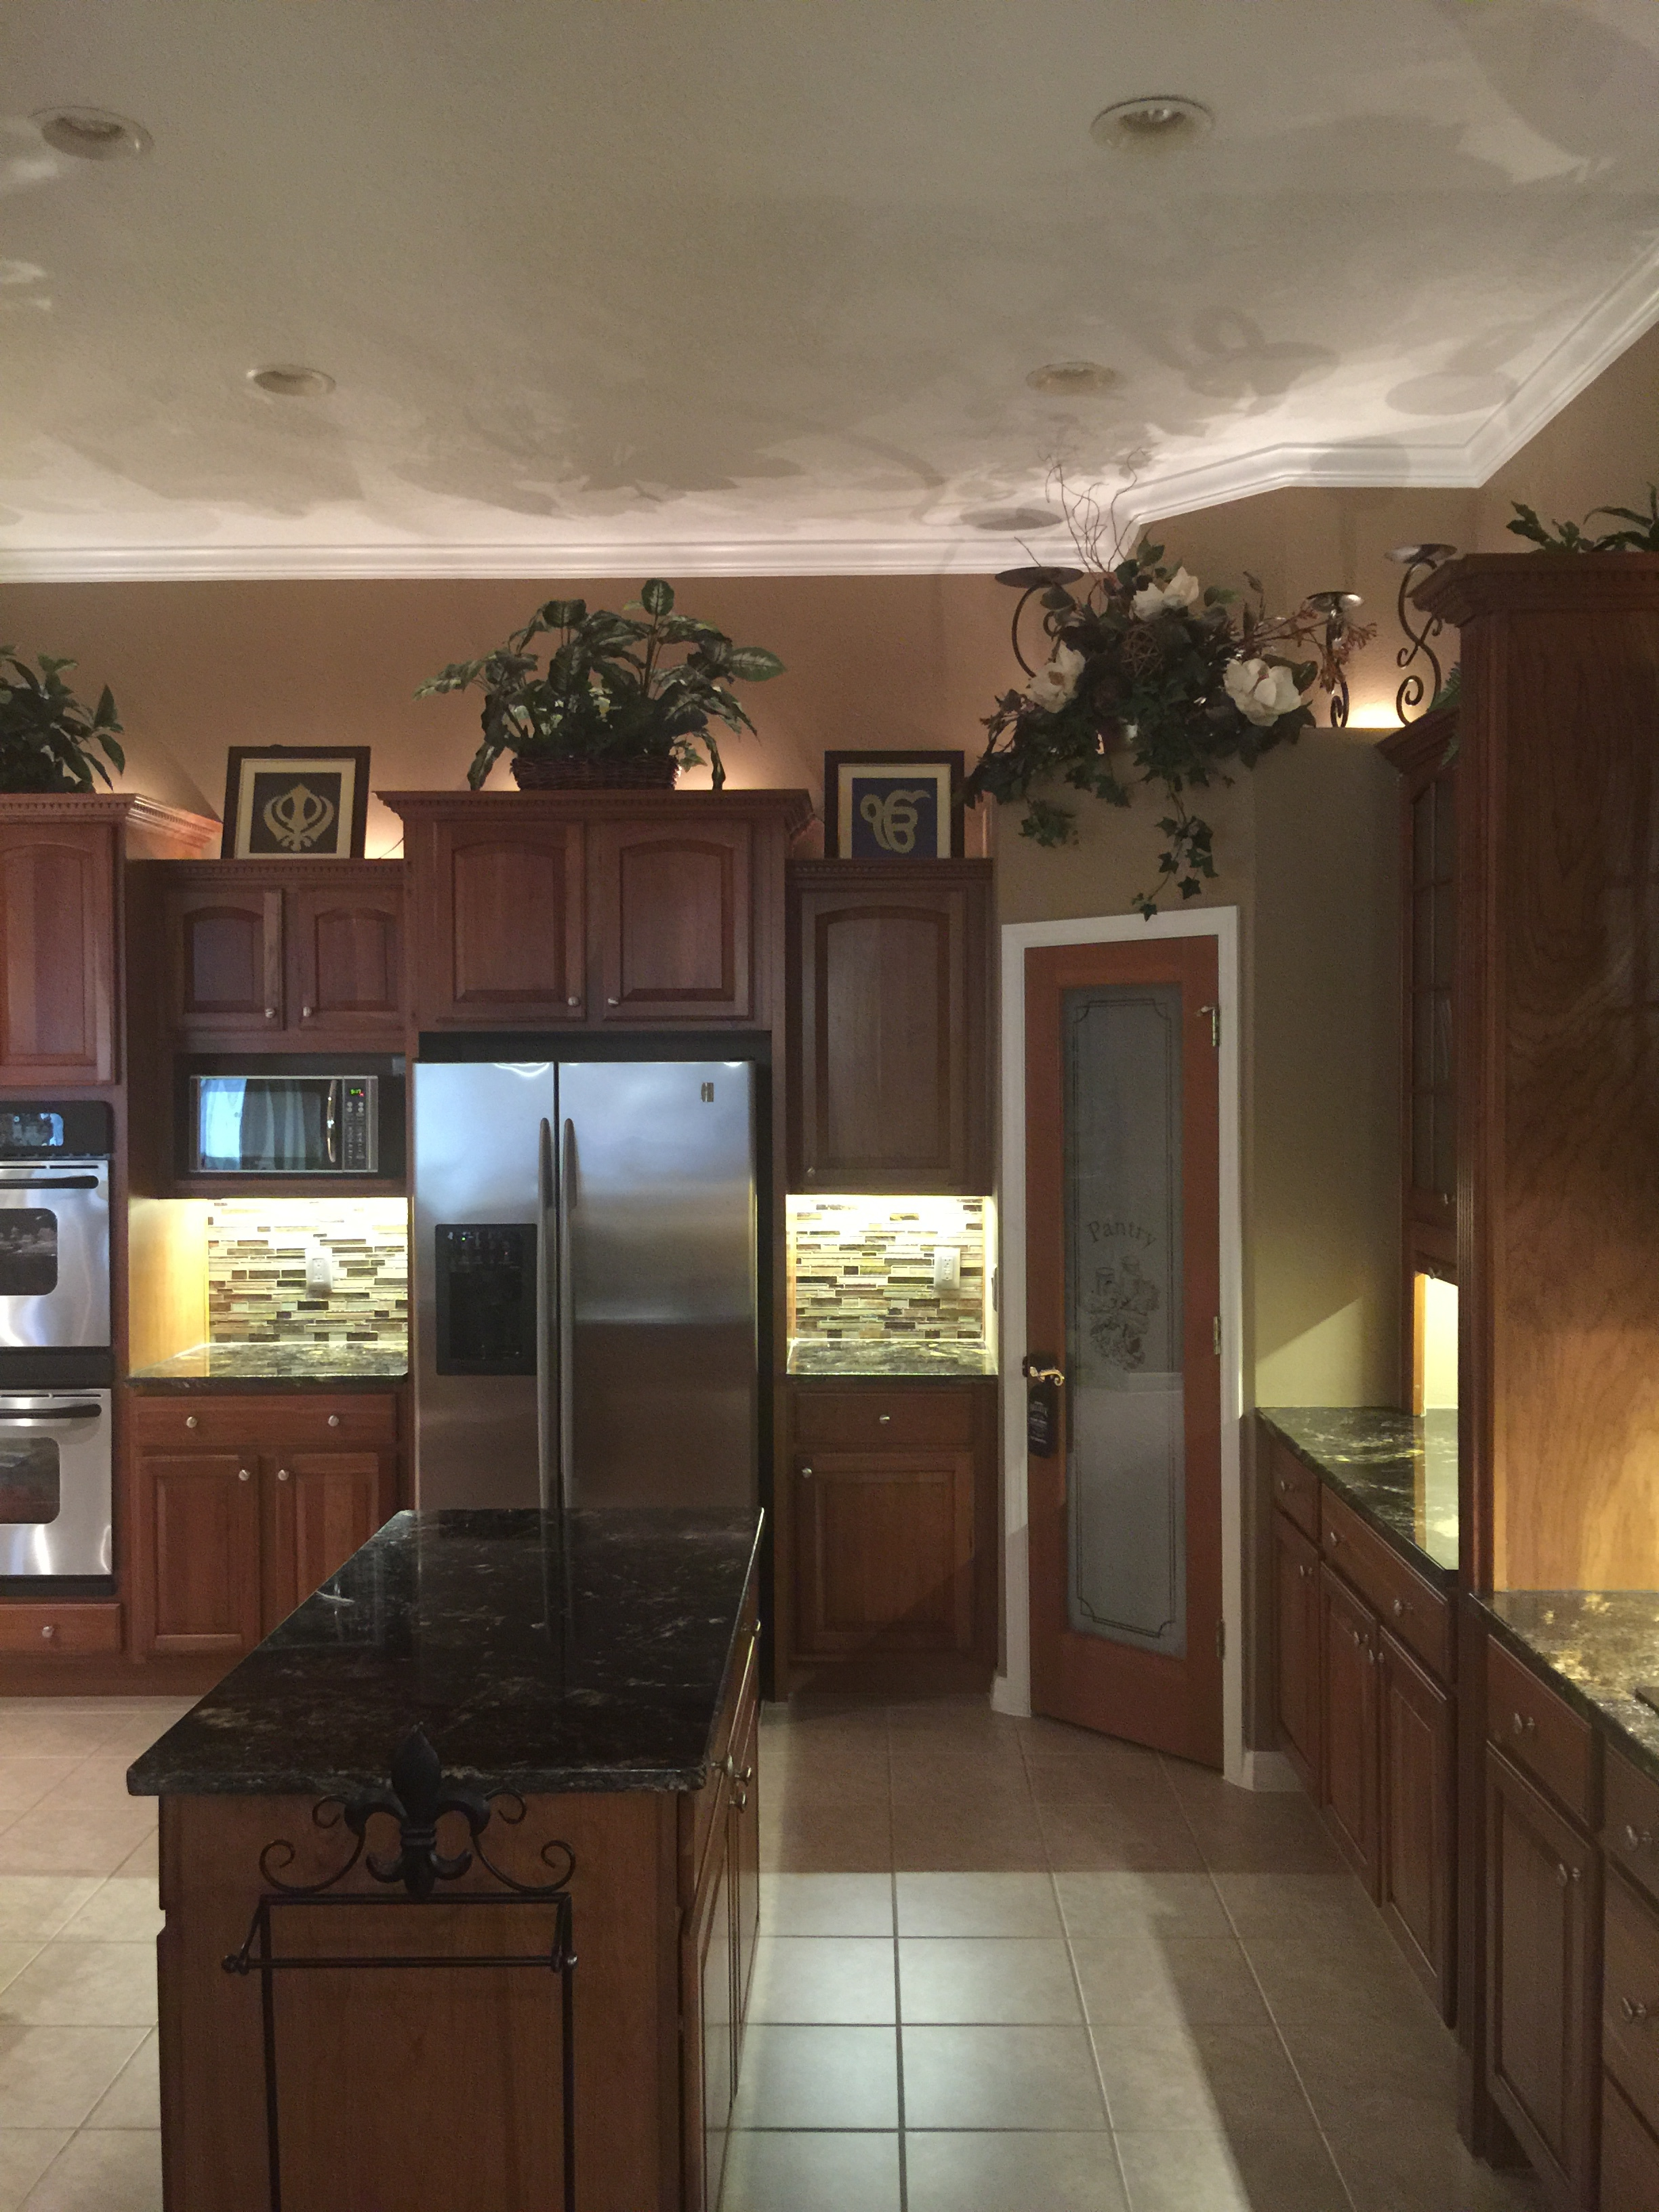 Low voltage lighting, accent above the cabinets and task lighting below.